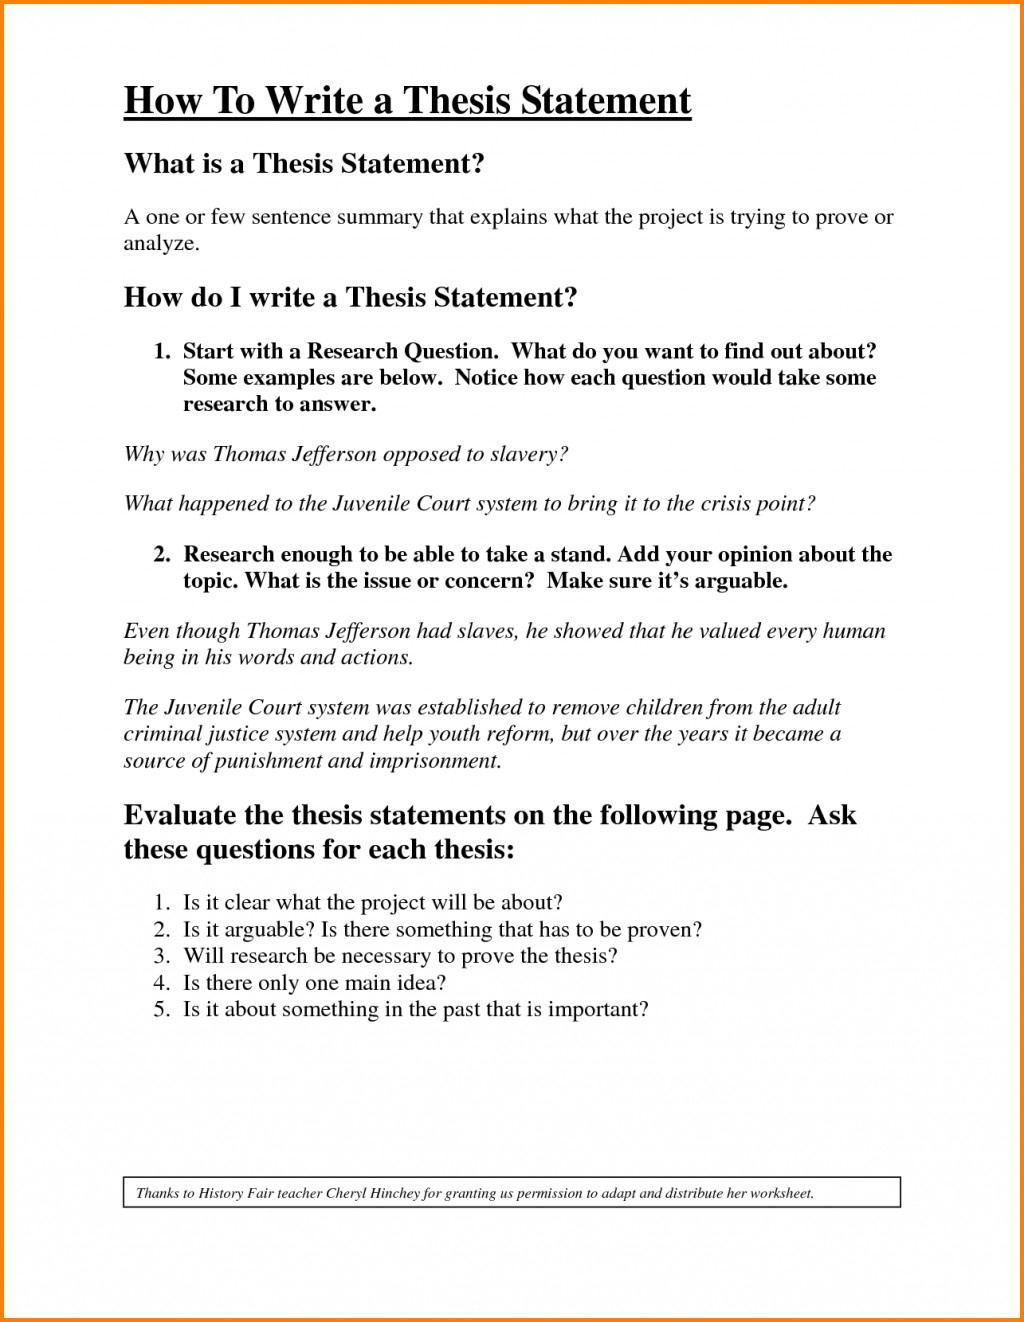 006 How To Make Good Essay Stupendous A Paper Plane Step By Title Page Thesis Statement For Descriptive Large